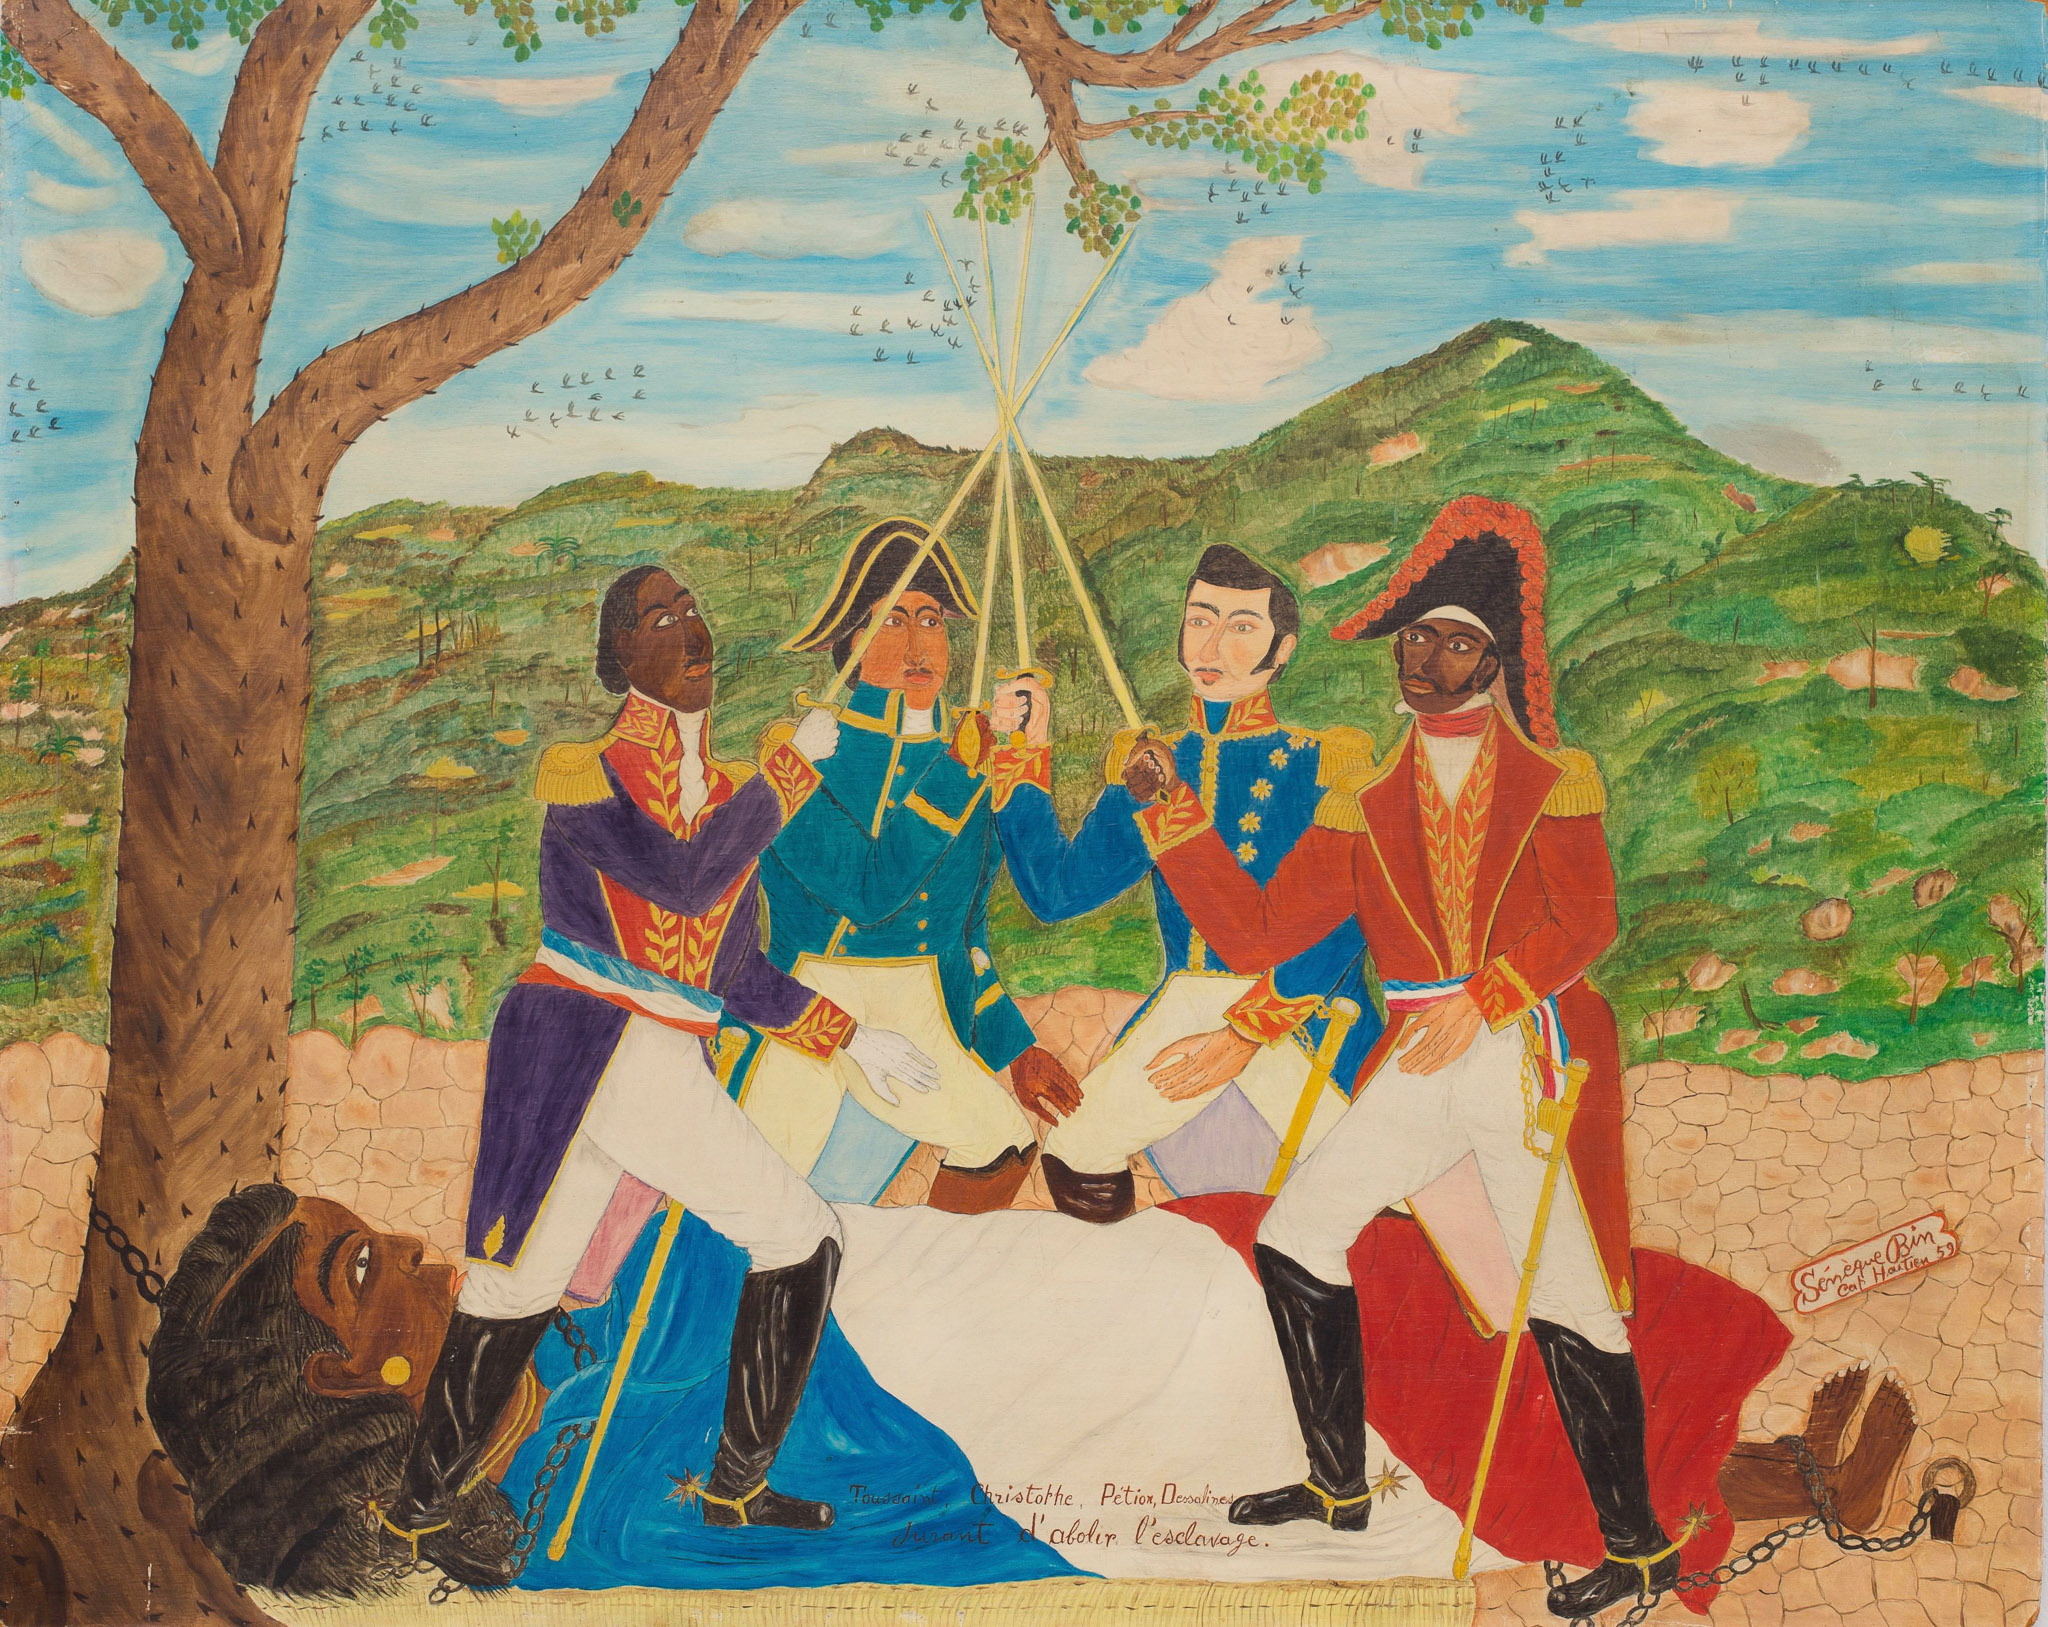 Toussaint, Christophe, Petion, Dessalines (Vowing to Abolish Slavery), 1959